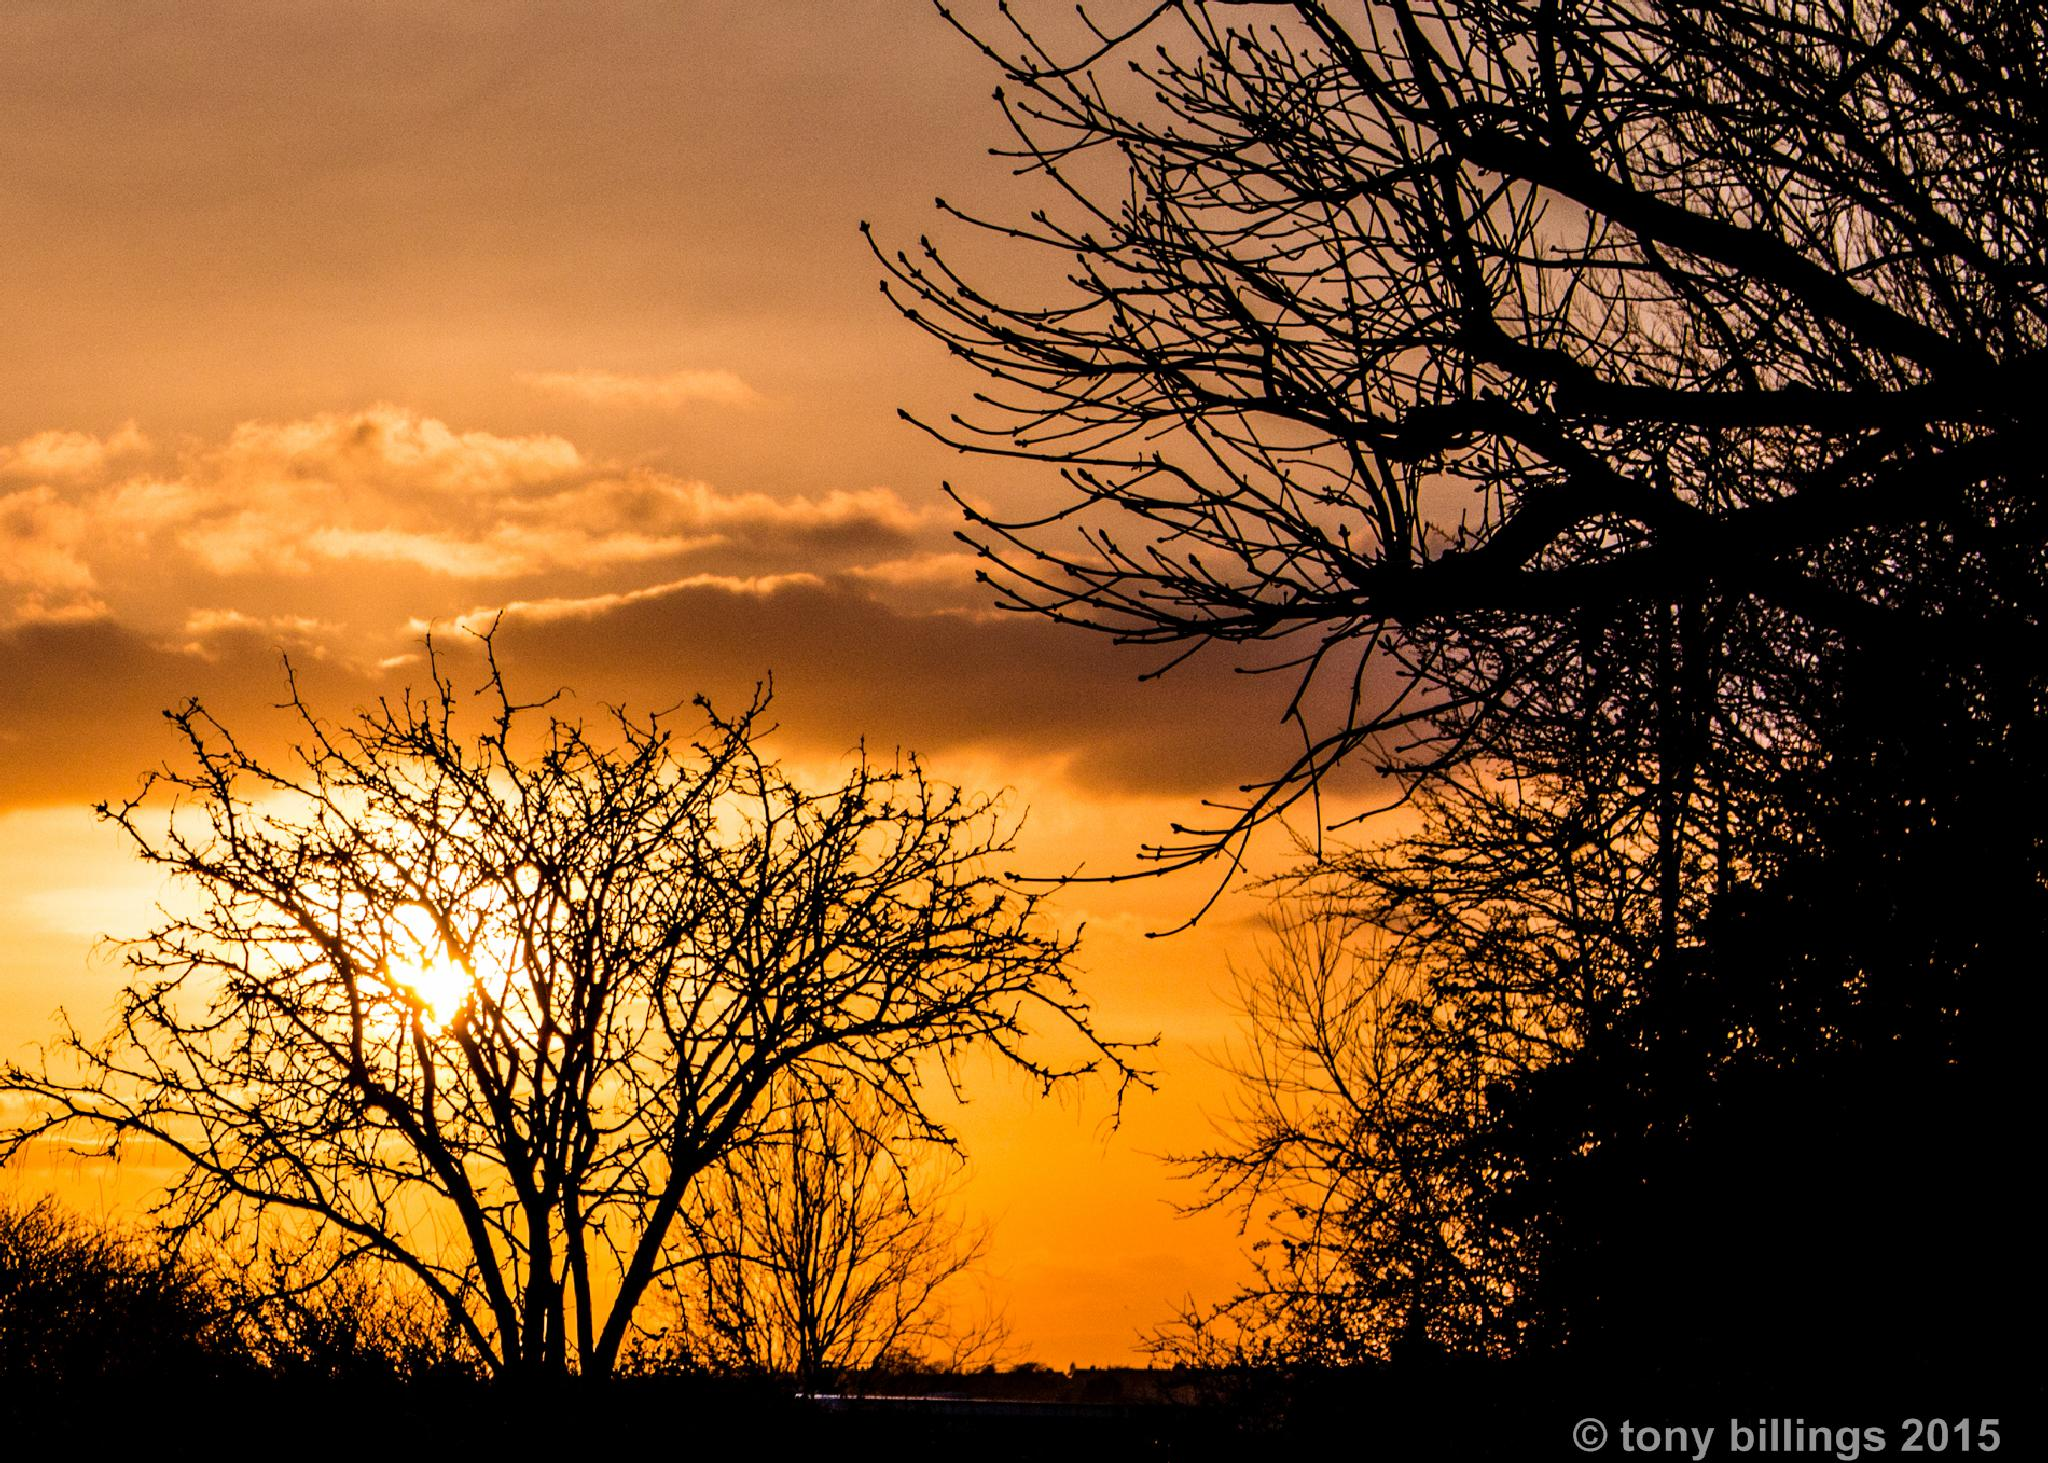 trees at sunset by tony billings